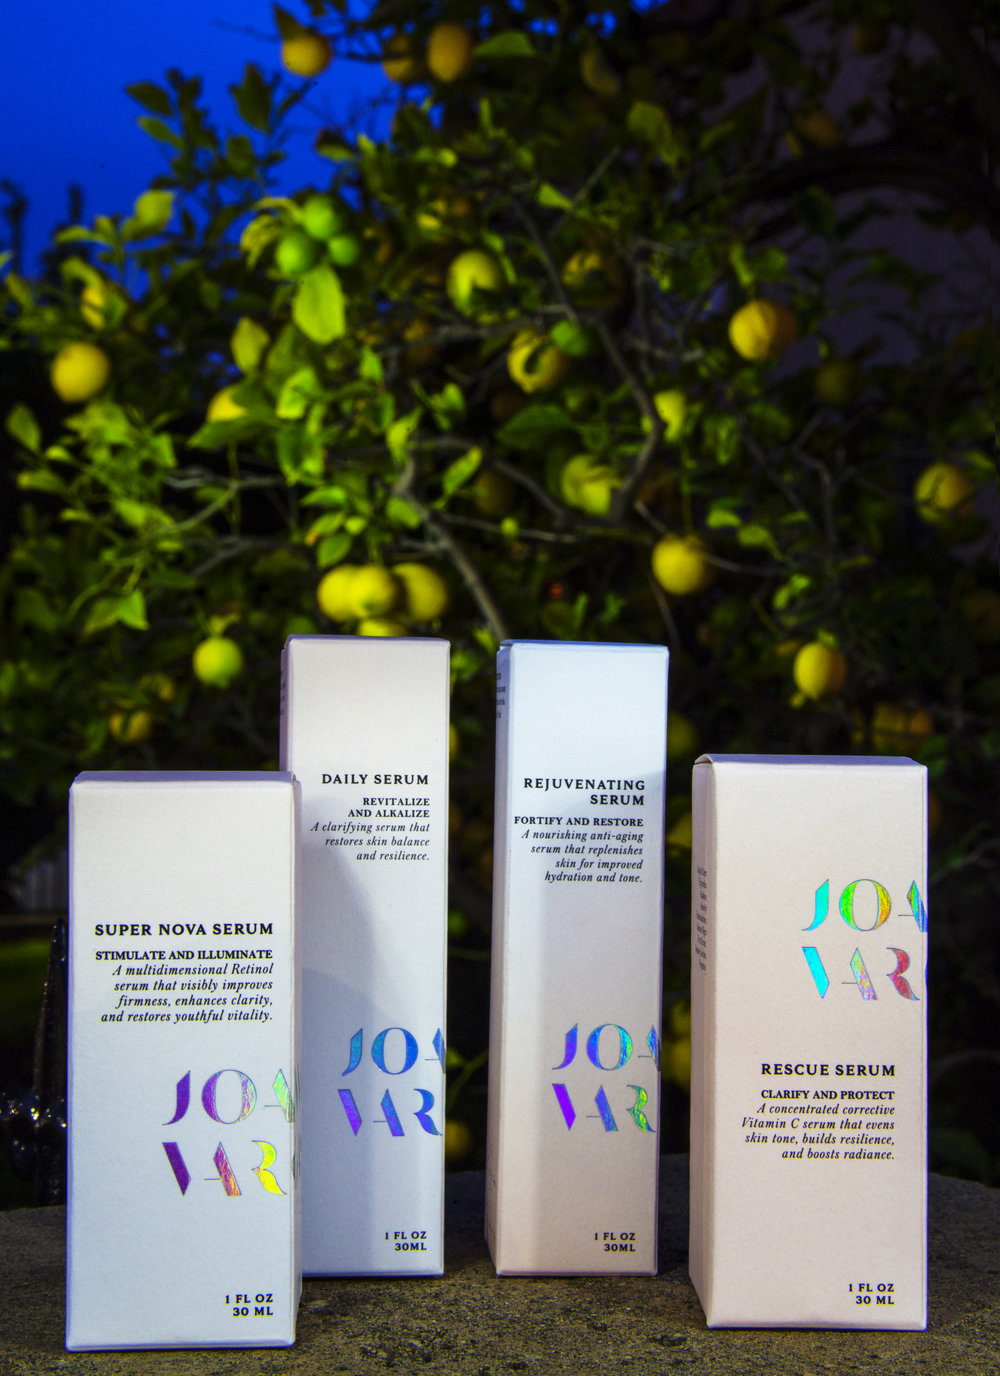 joanna-vargas-skincare-supernova-serum-super-nova-serum-super-nova-facial-west-hollywood-product-photography-celebrity-skincare-katrina-eugenia-photography77.jpg